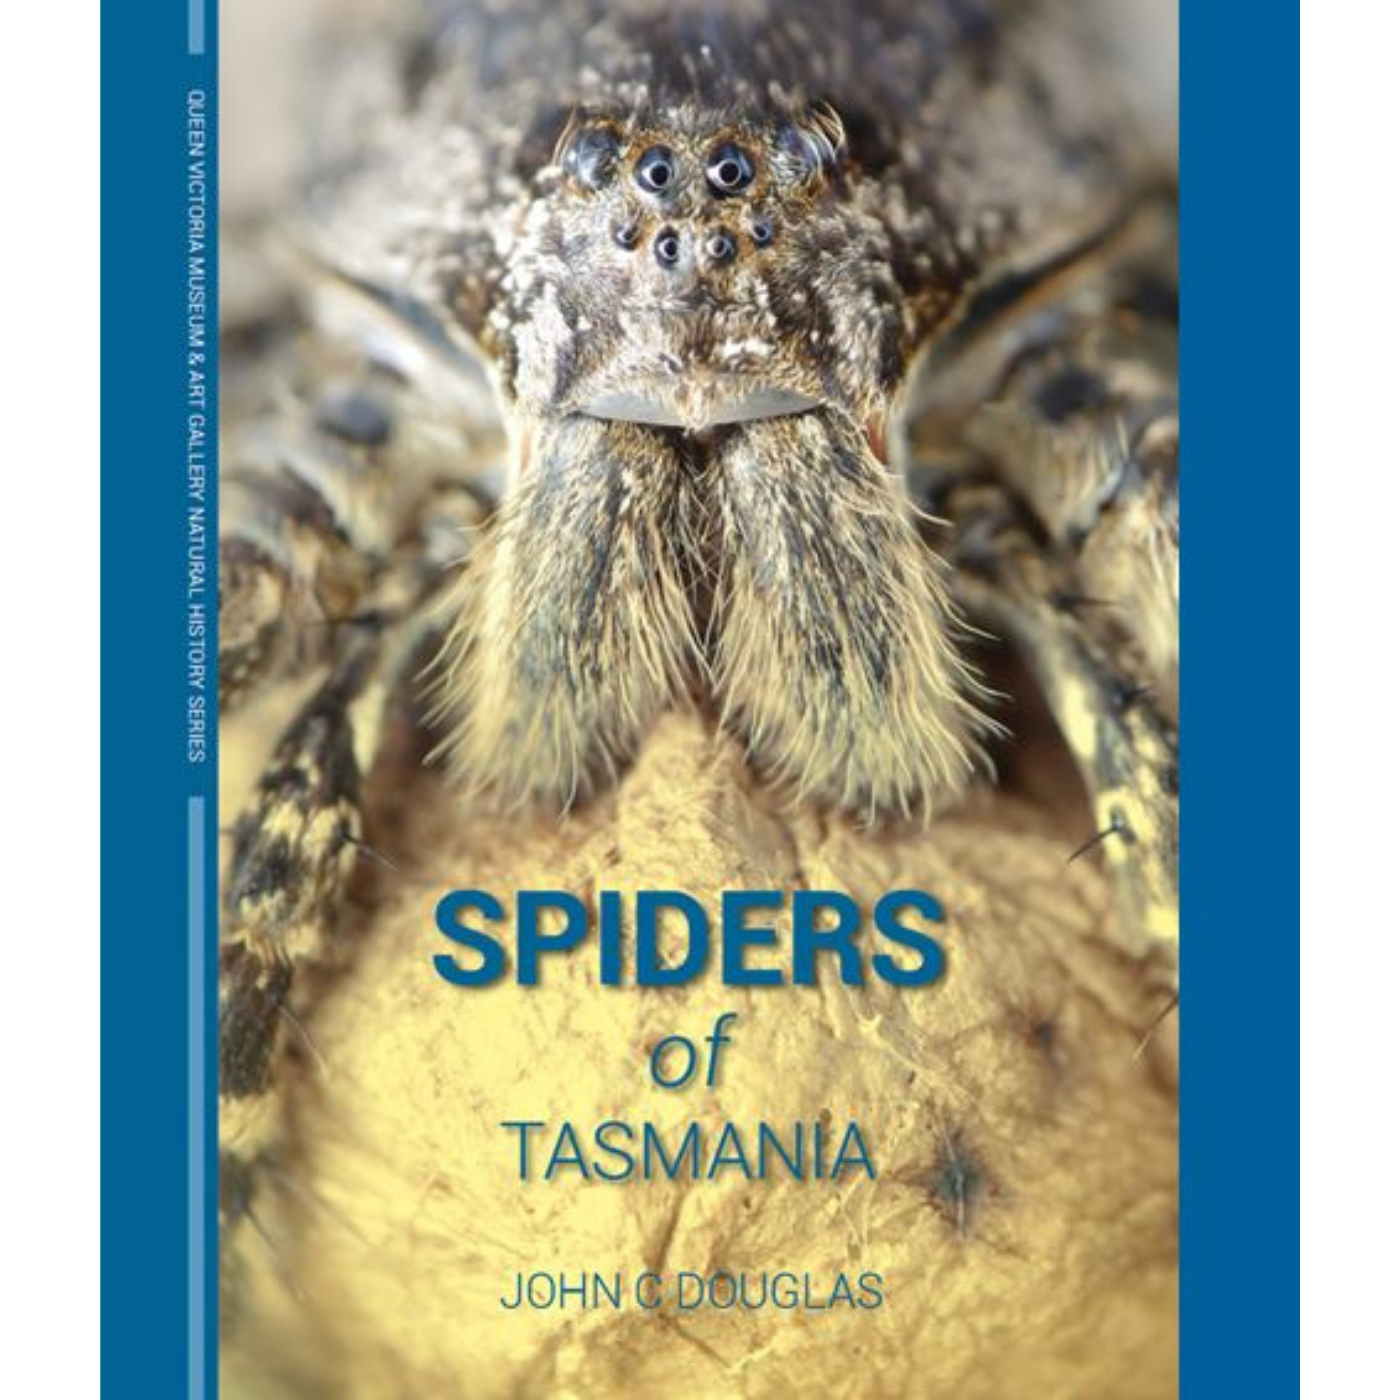 Spiders of Tasmania